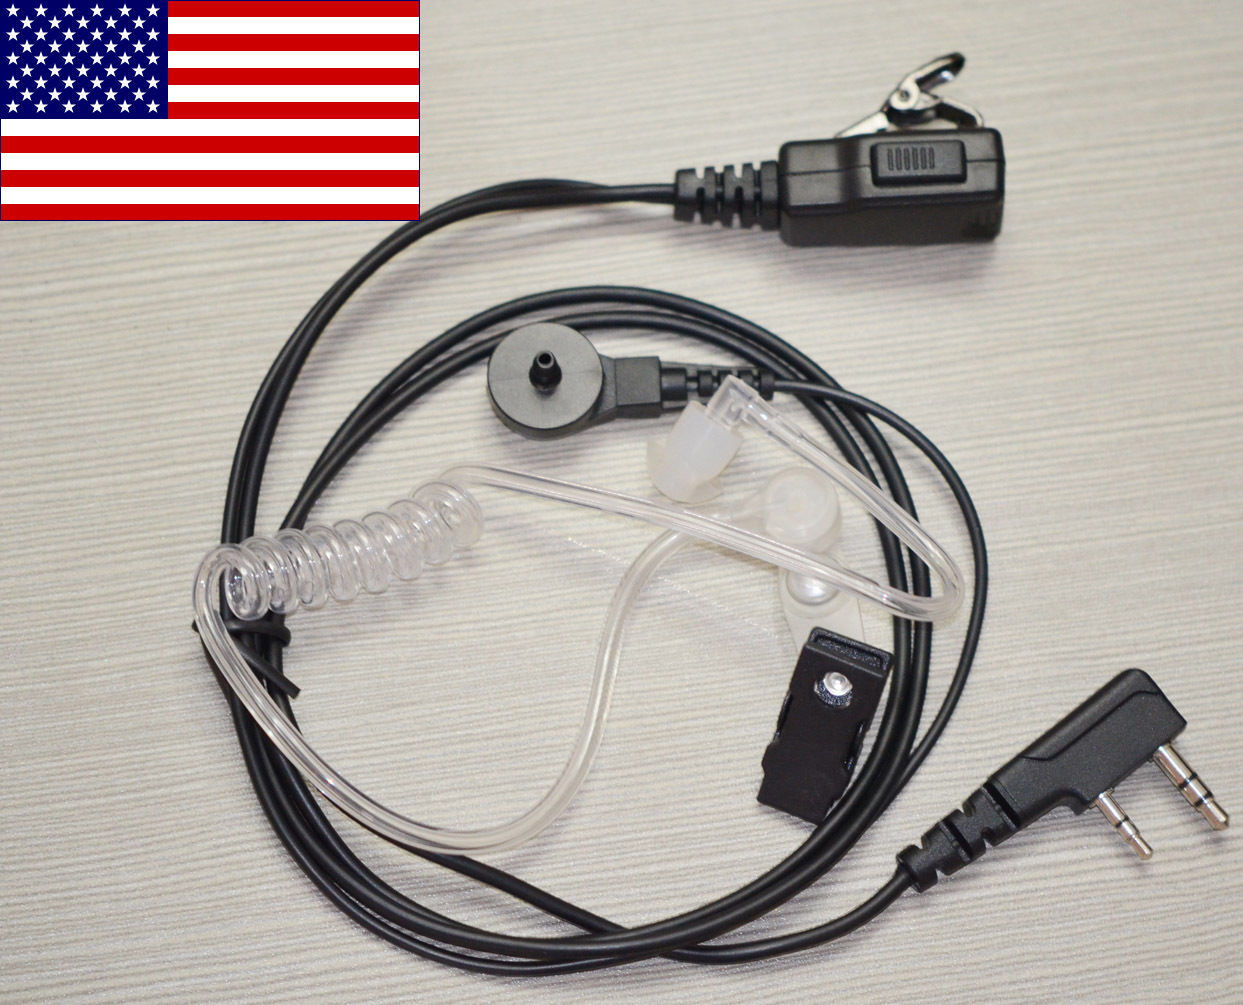 2 Pin Acoustic Tube Earpiece Earphone Mic for Kenwood TK3200 Baofeng UV5R BF888S